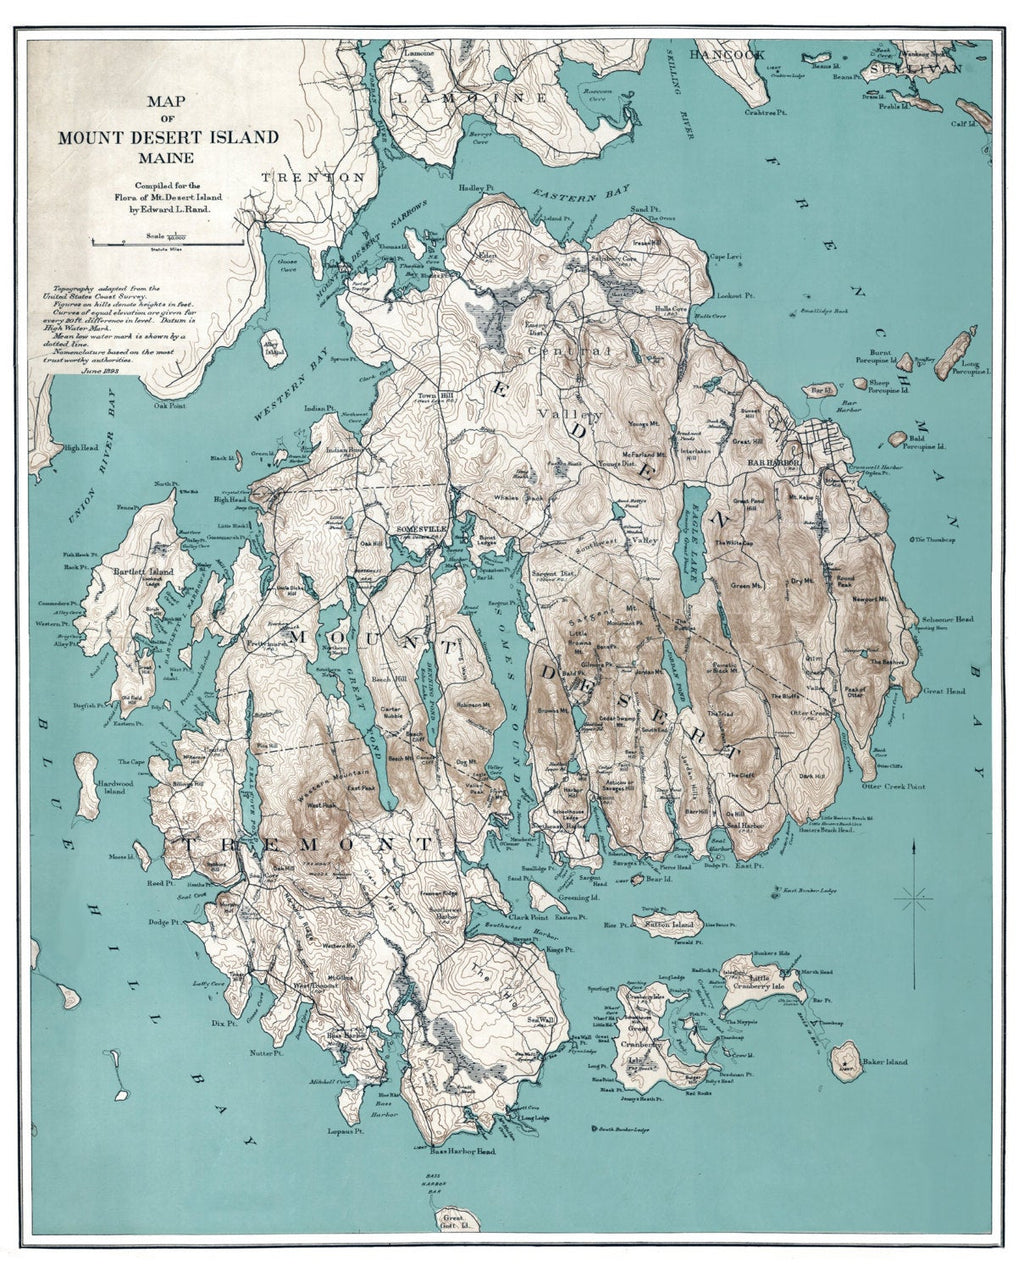 Mount Desert Island Maine Historic Map Art Print, Mt Desert Island, Maine Art, Mount Desert Island Art